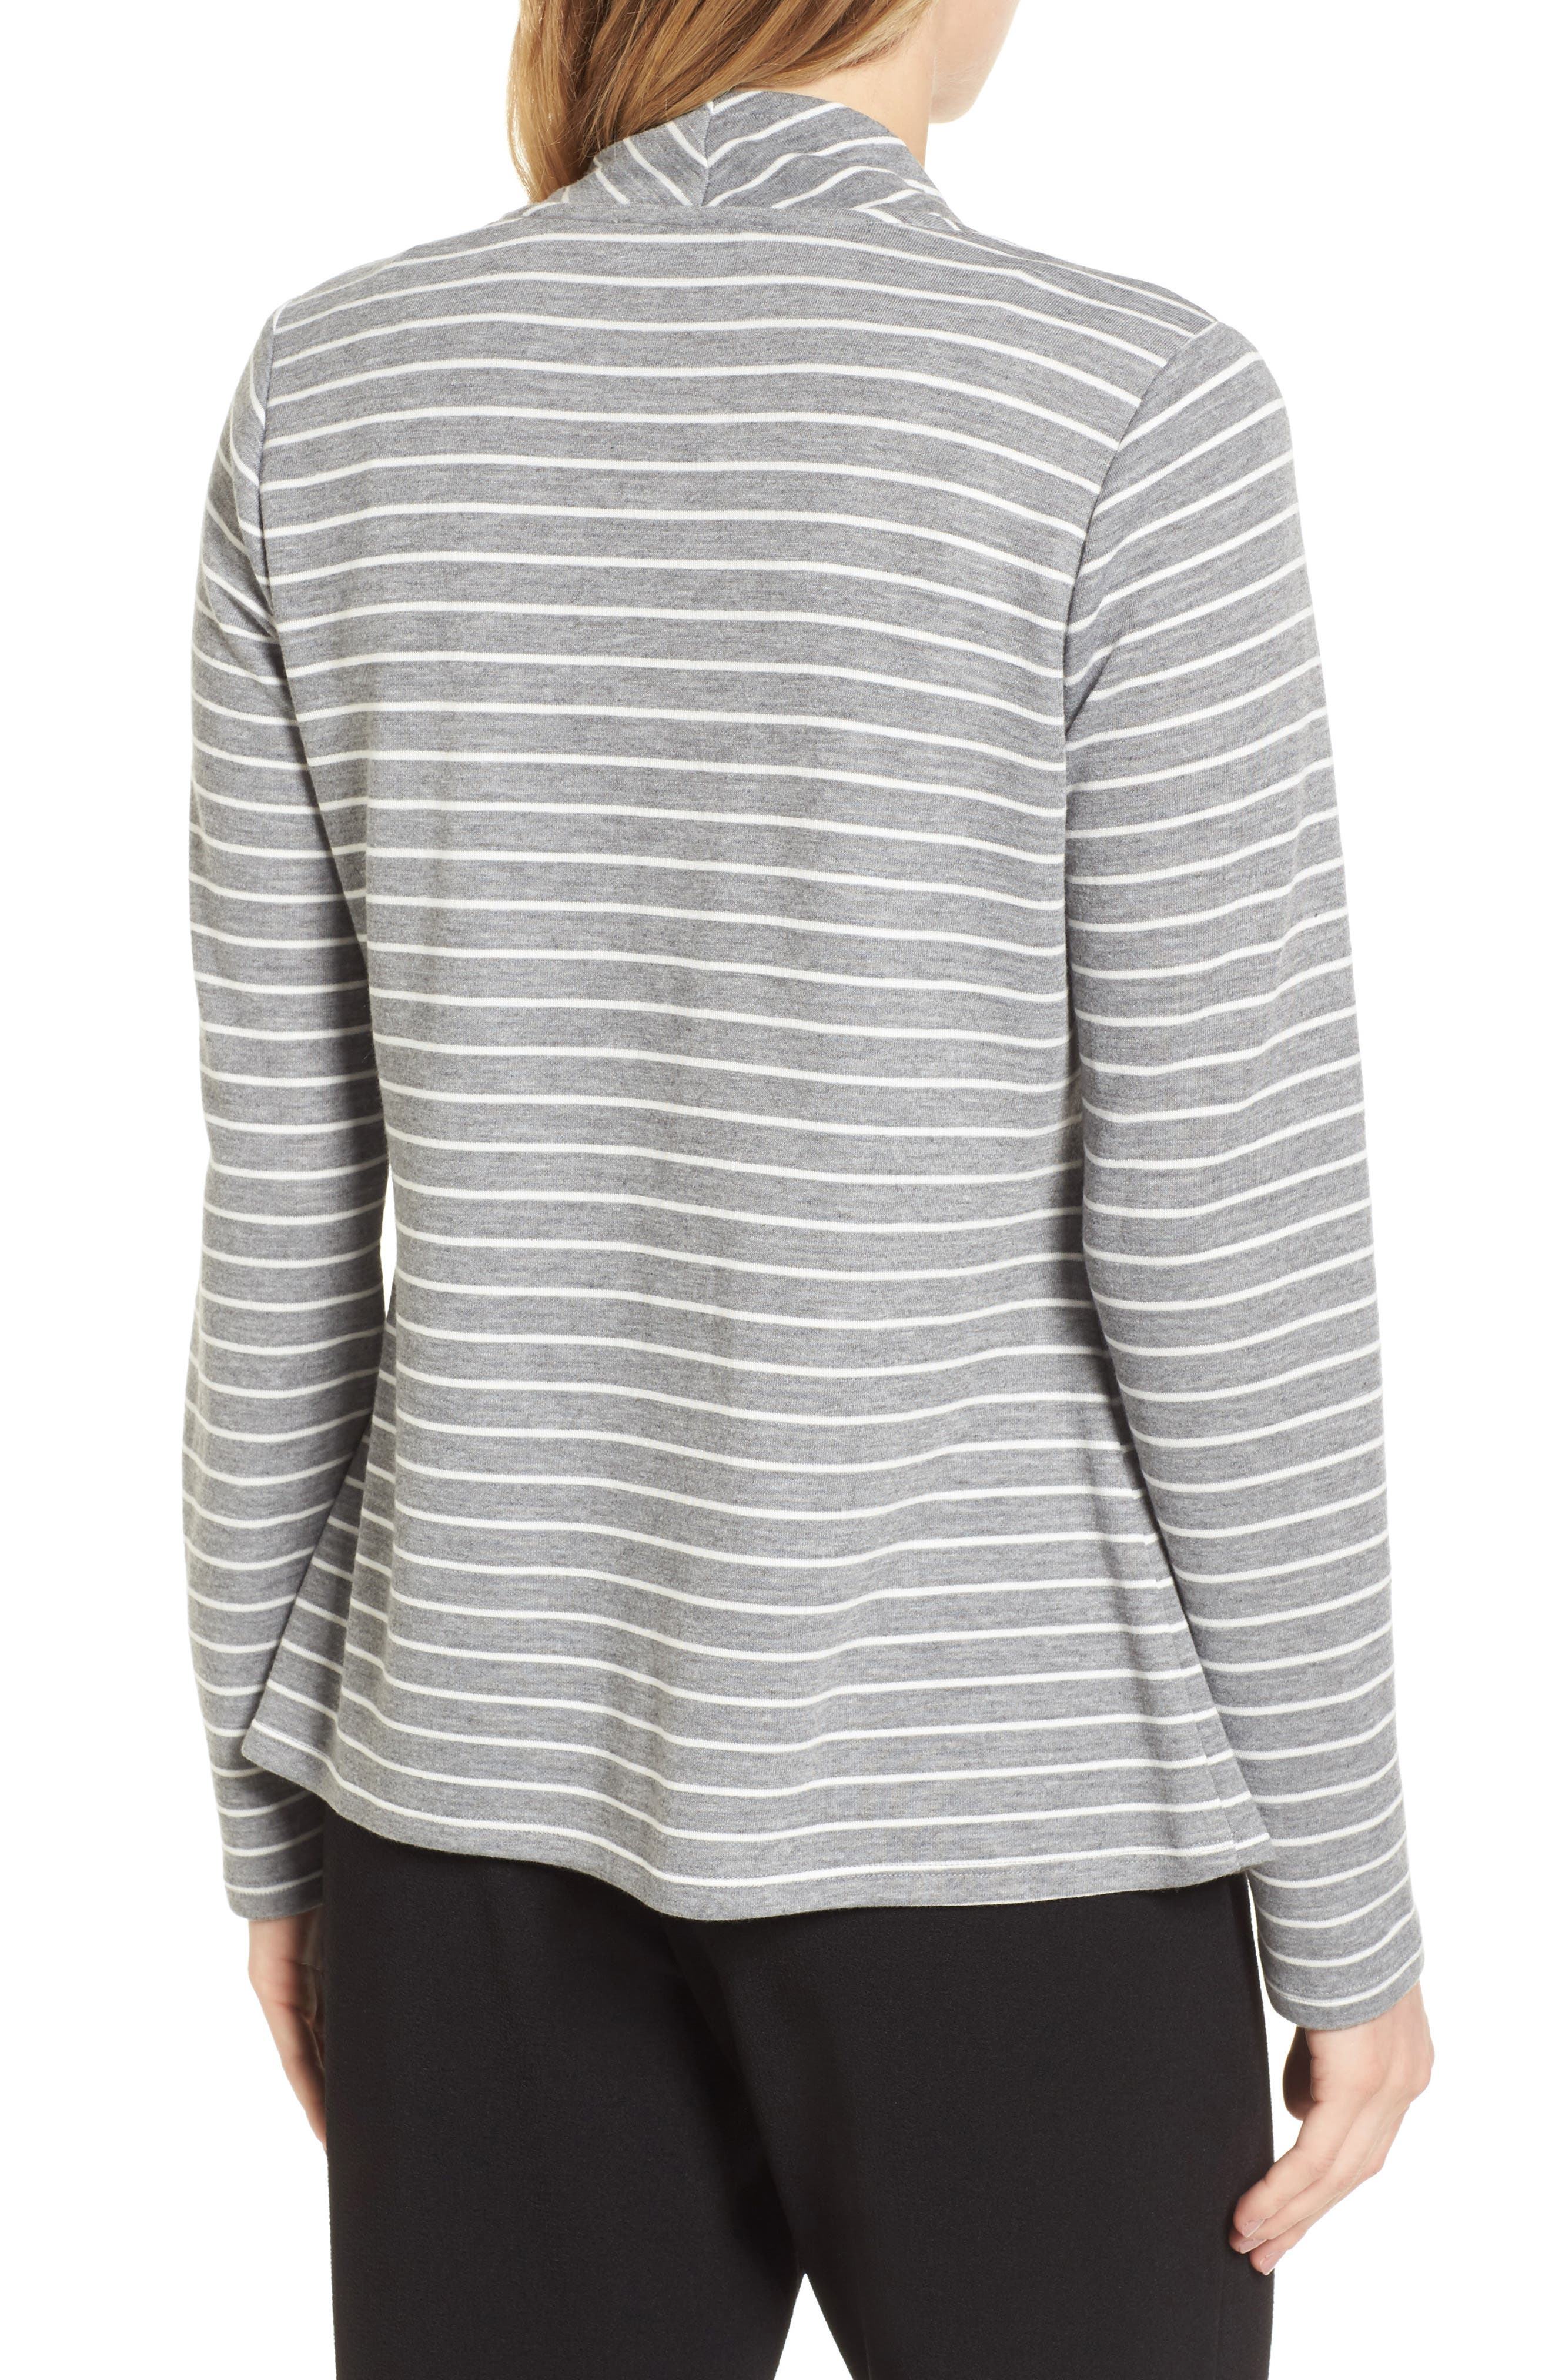 Mixed Stripe Cardigan,                             Alternate thumbnail 2, color,                             050-Grey Heather